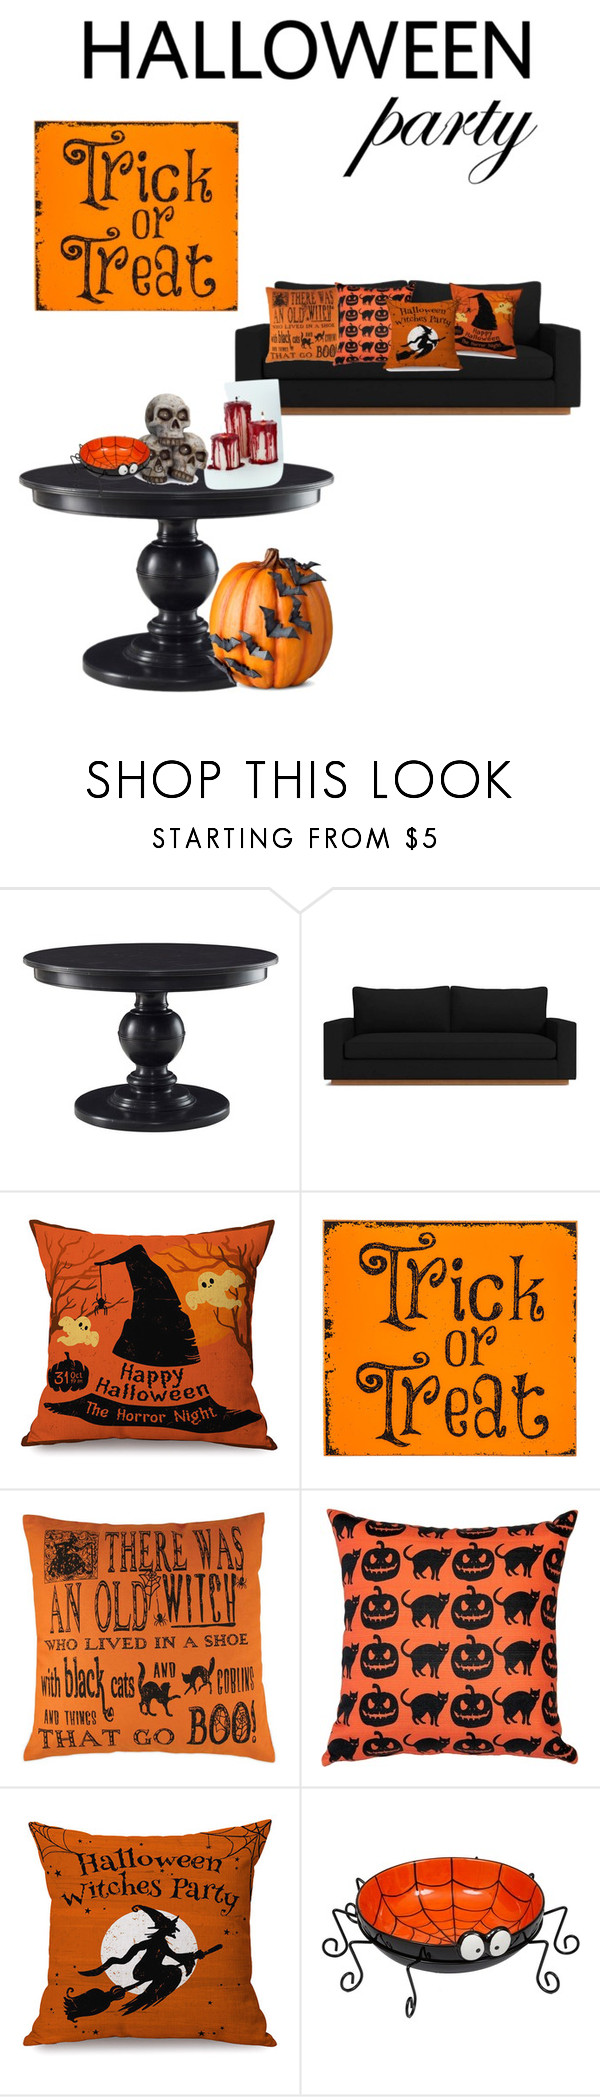 """""""Halloween Party Decor"""" by lynn-osborne ❤ liked on Polyvore featuring interior, interiors, interior design, home, home decor, interior decorating, Pillow Decor, Improvements and Halloweenparty"""